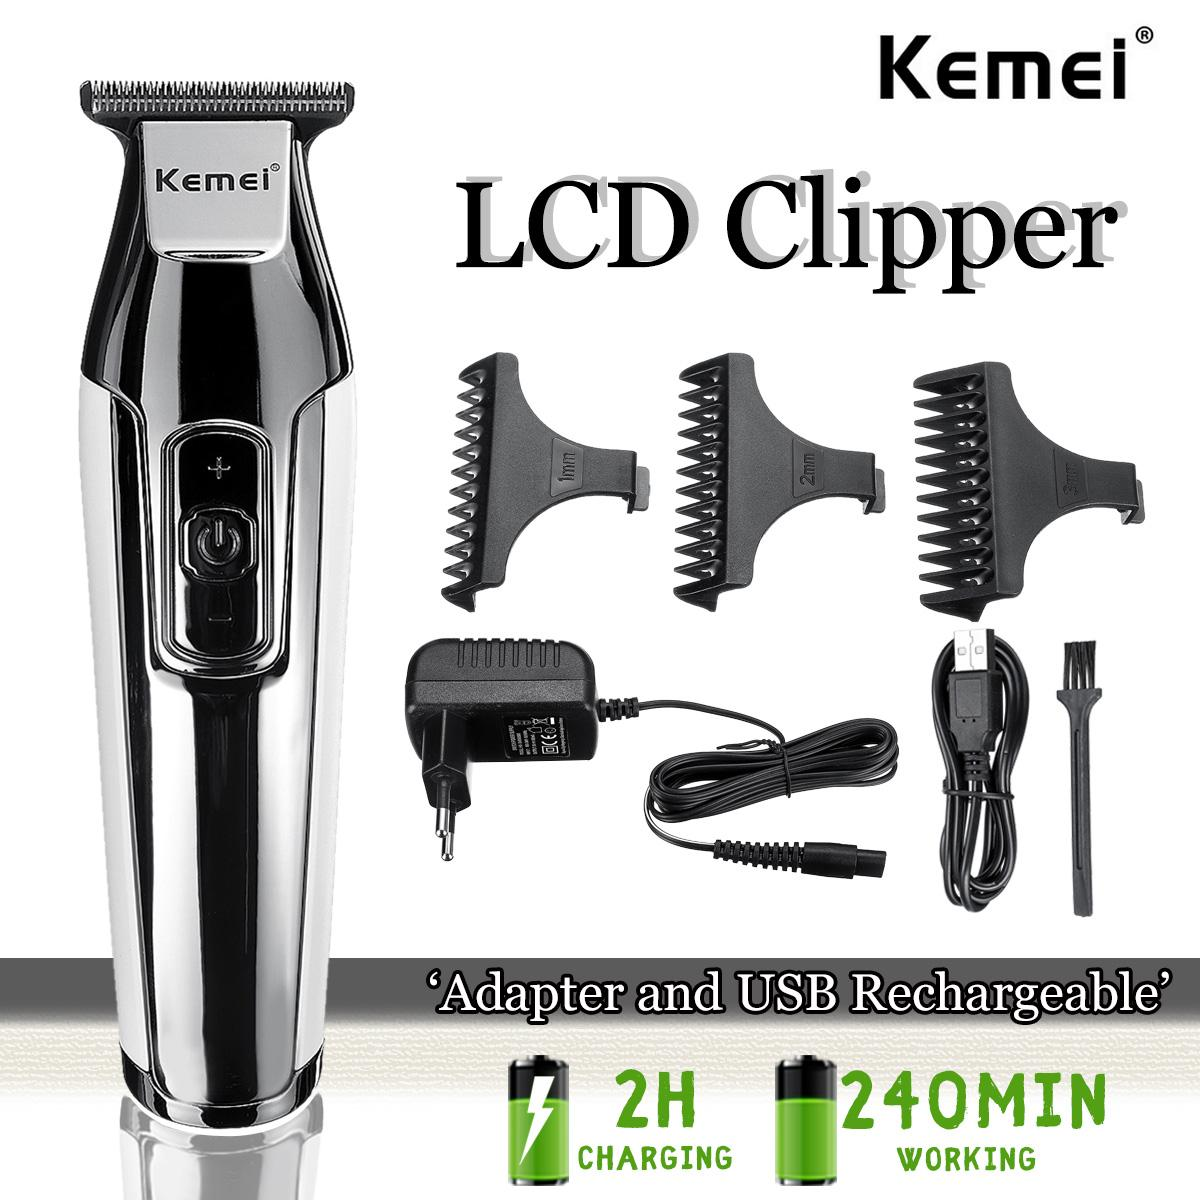 Kemei Professional Hair Trimmer LCD Display 0mm Fast Charging Baldheaded Beard Cordless Electric Hair Cutting Machine RazorsKemei Professional Hair Trimmer LCD Display 0mm Fast Charging Baldheaded Beard Cordless Electric Hair Cutting Machine Razors